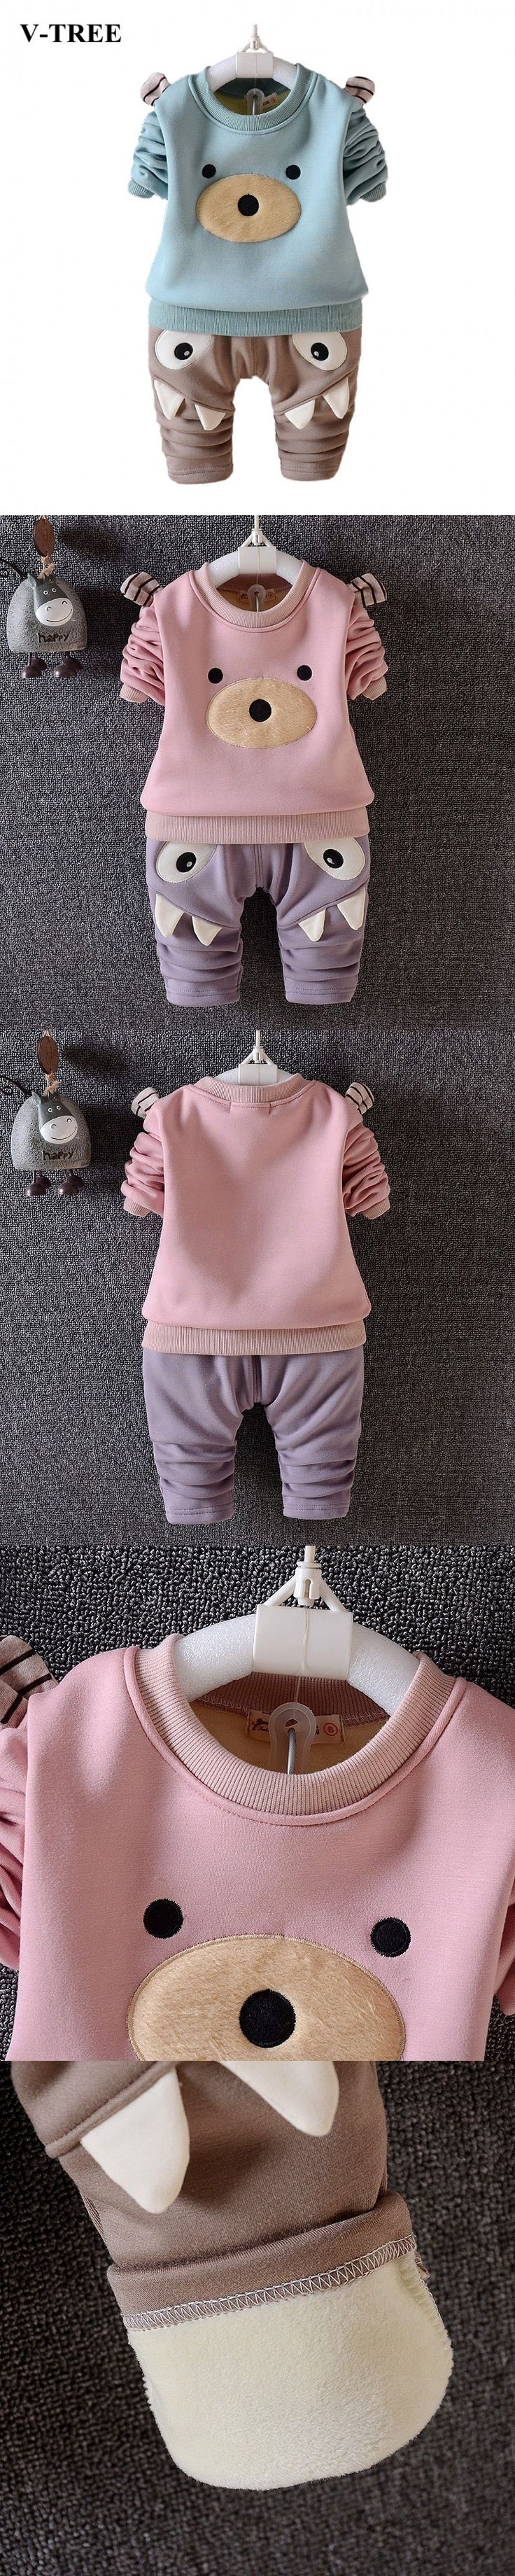 Infant Boy Clothing Sweater 2pcs/set Newborn Clothes For Baby Boy Sets Of Clothes For Girls And Boys Baby Clothing Set Christmas $18.98